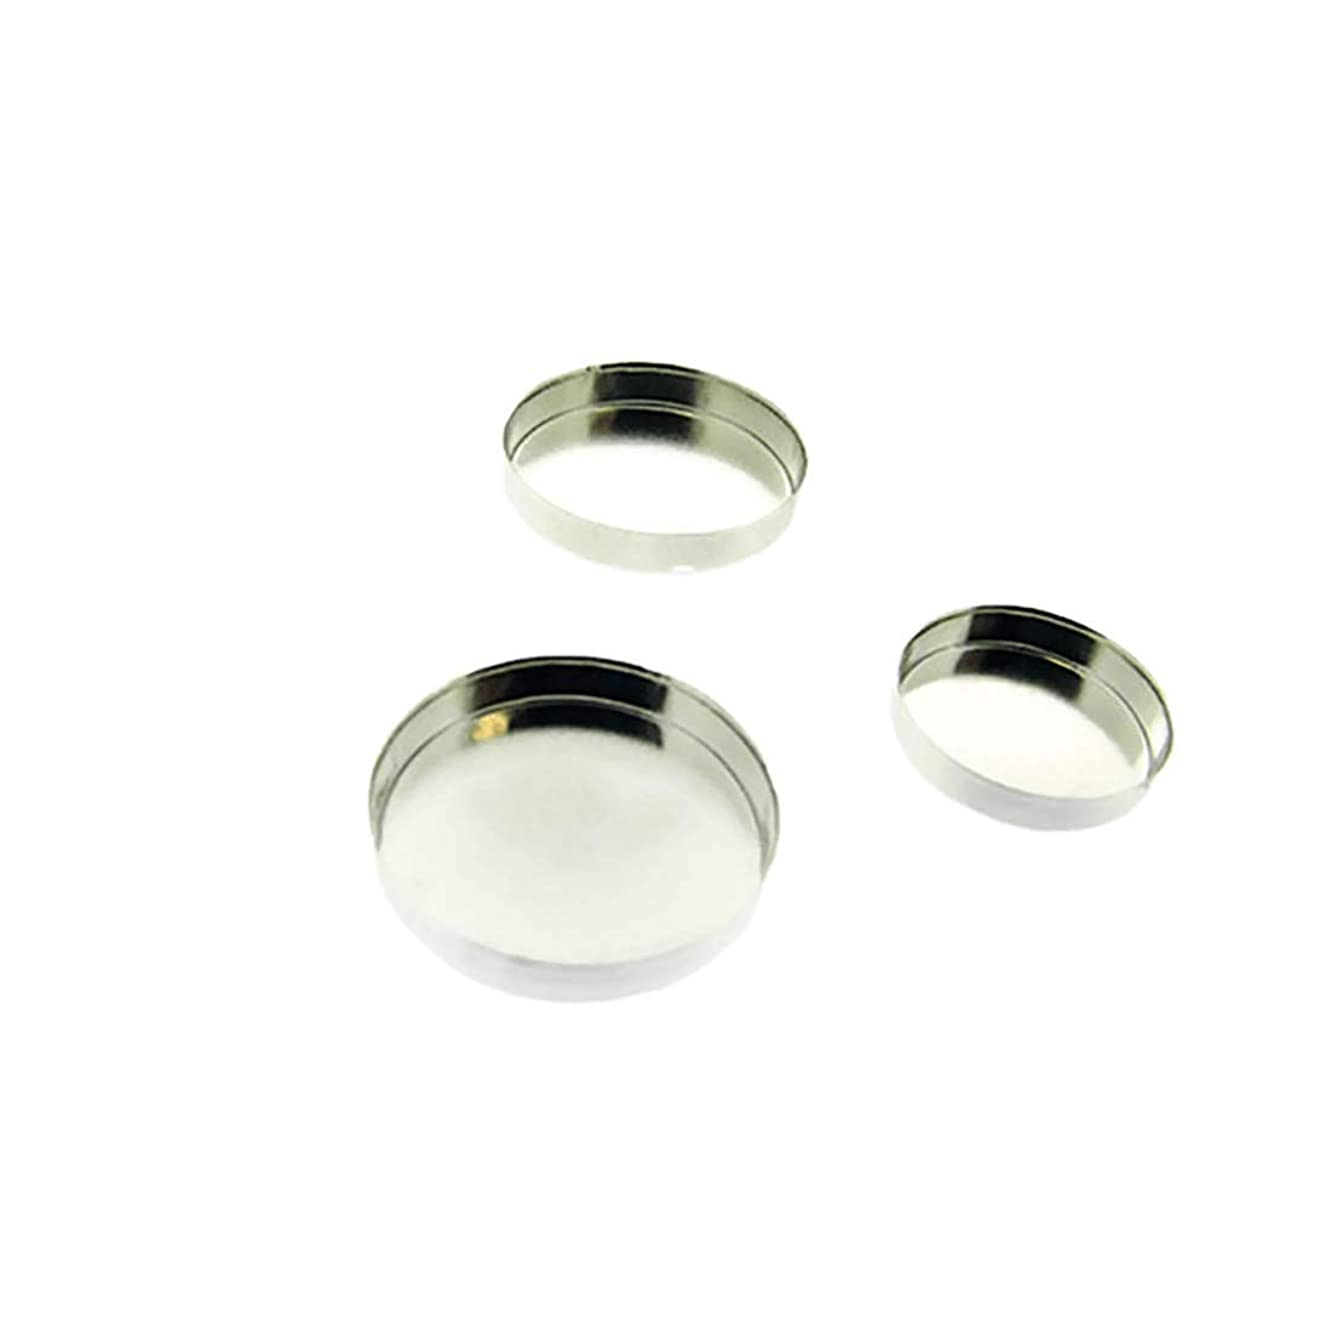 Bedrock Jewelry 20 Fine Silver .999 Round Bezel Cup Setting, Sizes 3mm, 4mm, 5mm, 6mm, 8mm 10mm